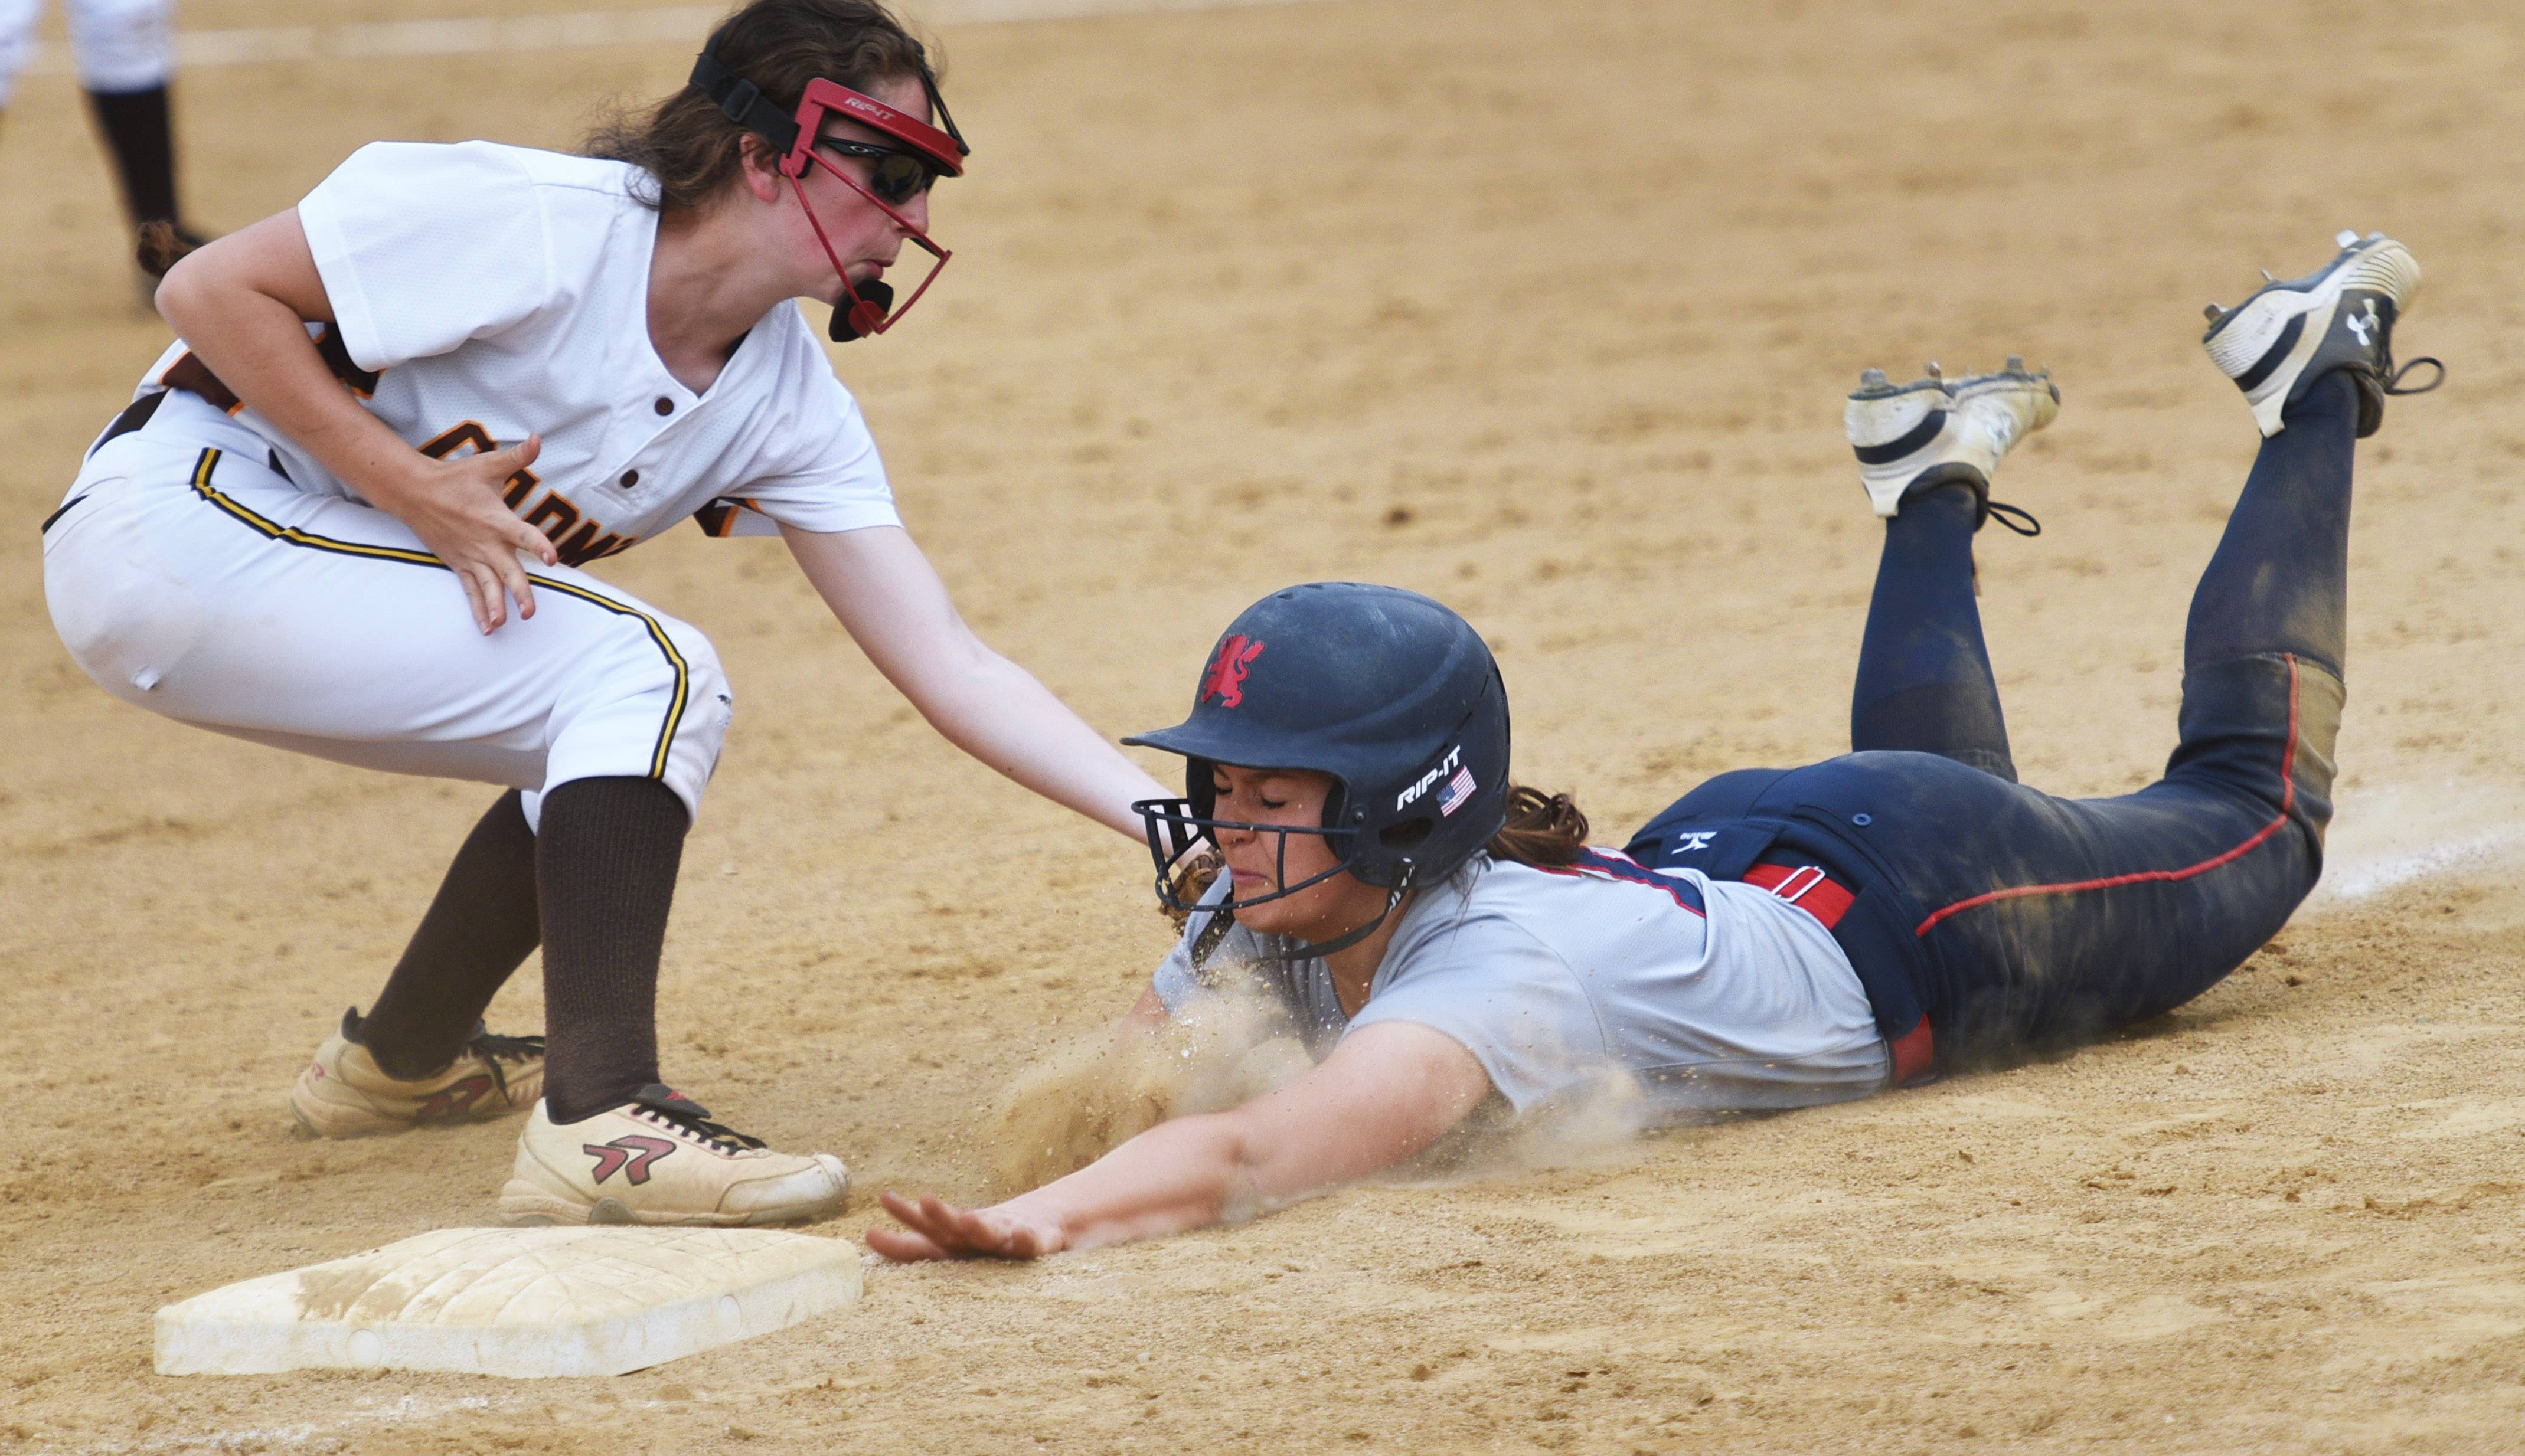 St. Viator's Kyra Hatch, right, is picked off at third base by Carmel's Hailie Swiatkowski during Monday's softball game in Arlington Heights.